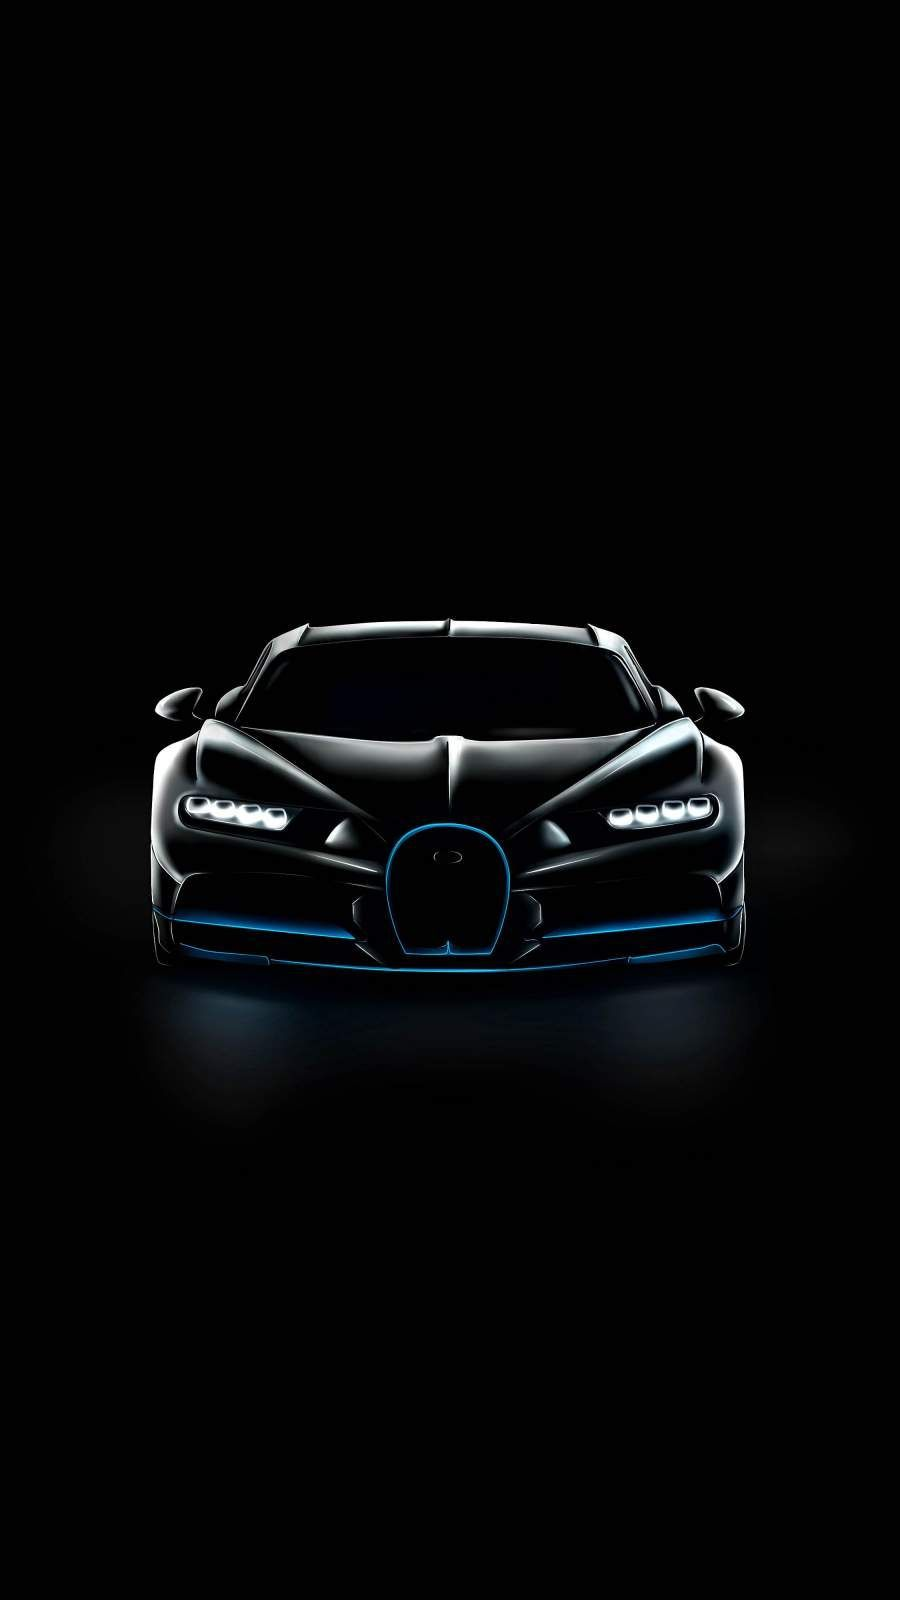 Bugatti 4k Iphone Wallpapers Wallpaper Cave